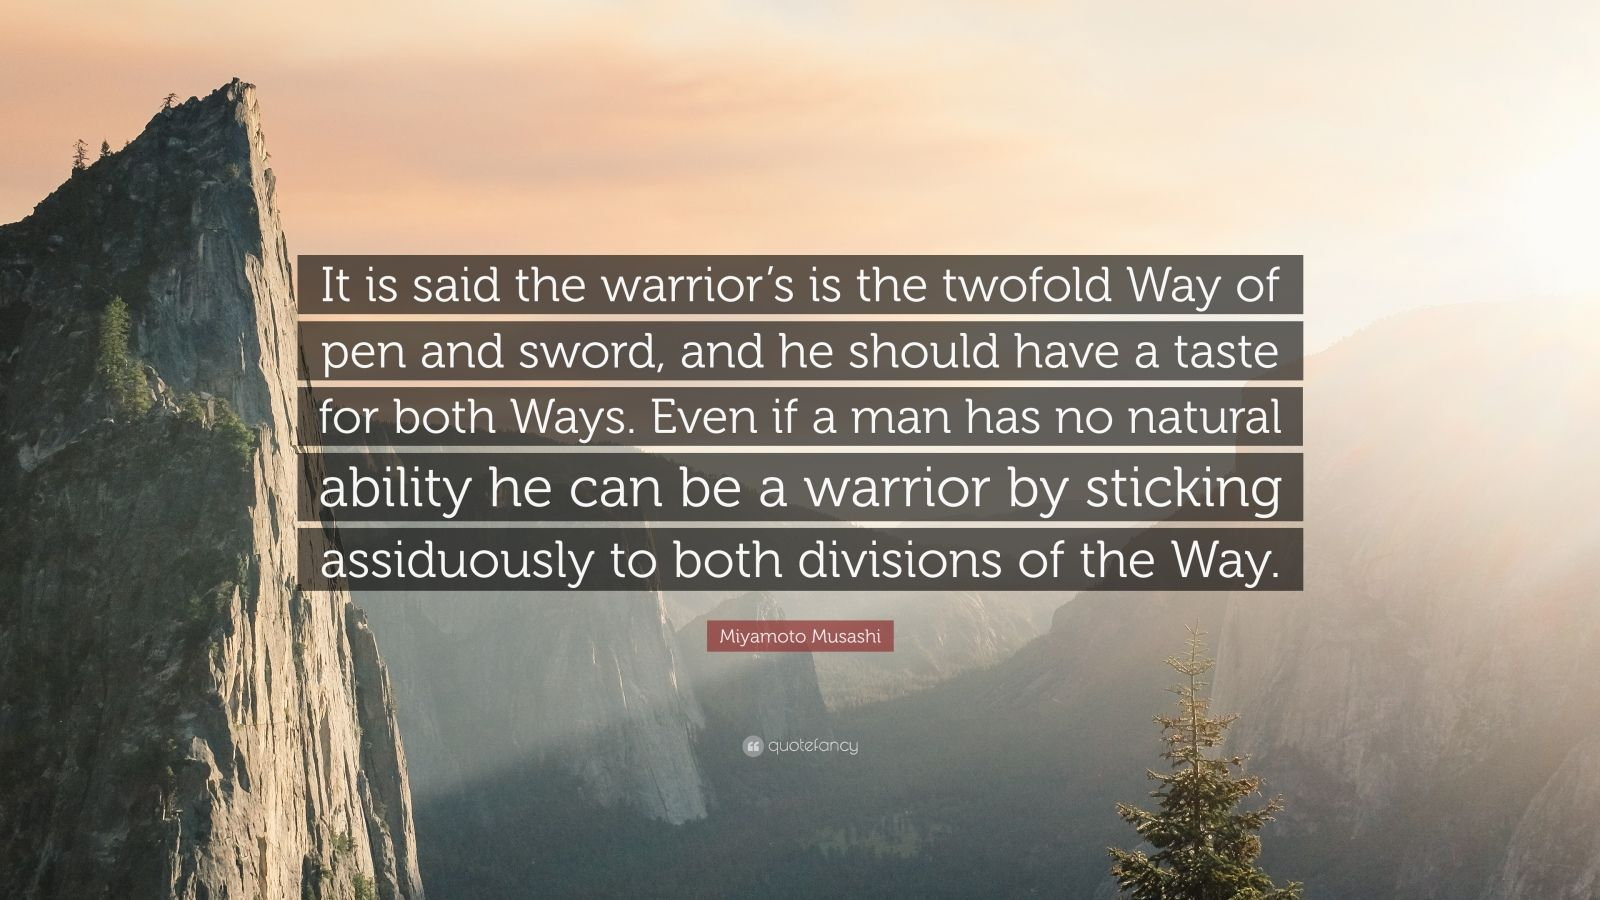 "Miyamoto Musashi Quote: ""It is said the warrior's is the twofold Way of pen and sword, and he should have a taste for both Ways. Even if a man has no natural ability he can be a warrior by sticking assiduously to both divisions of the Way."""